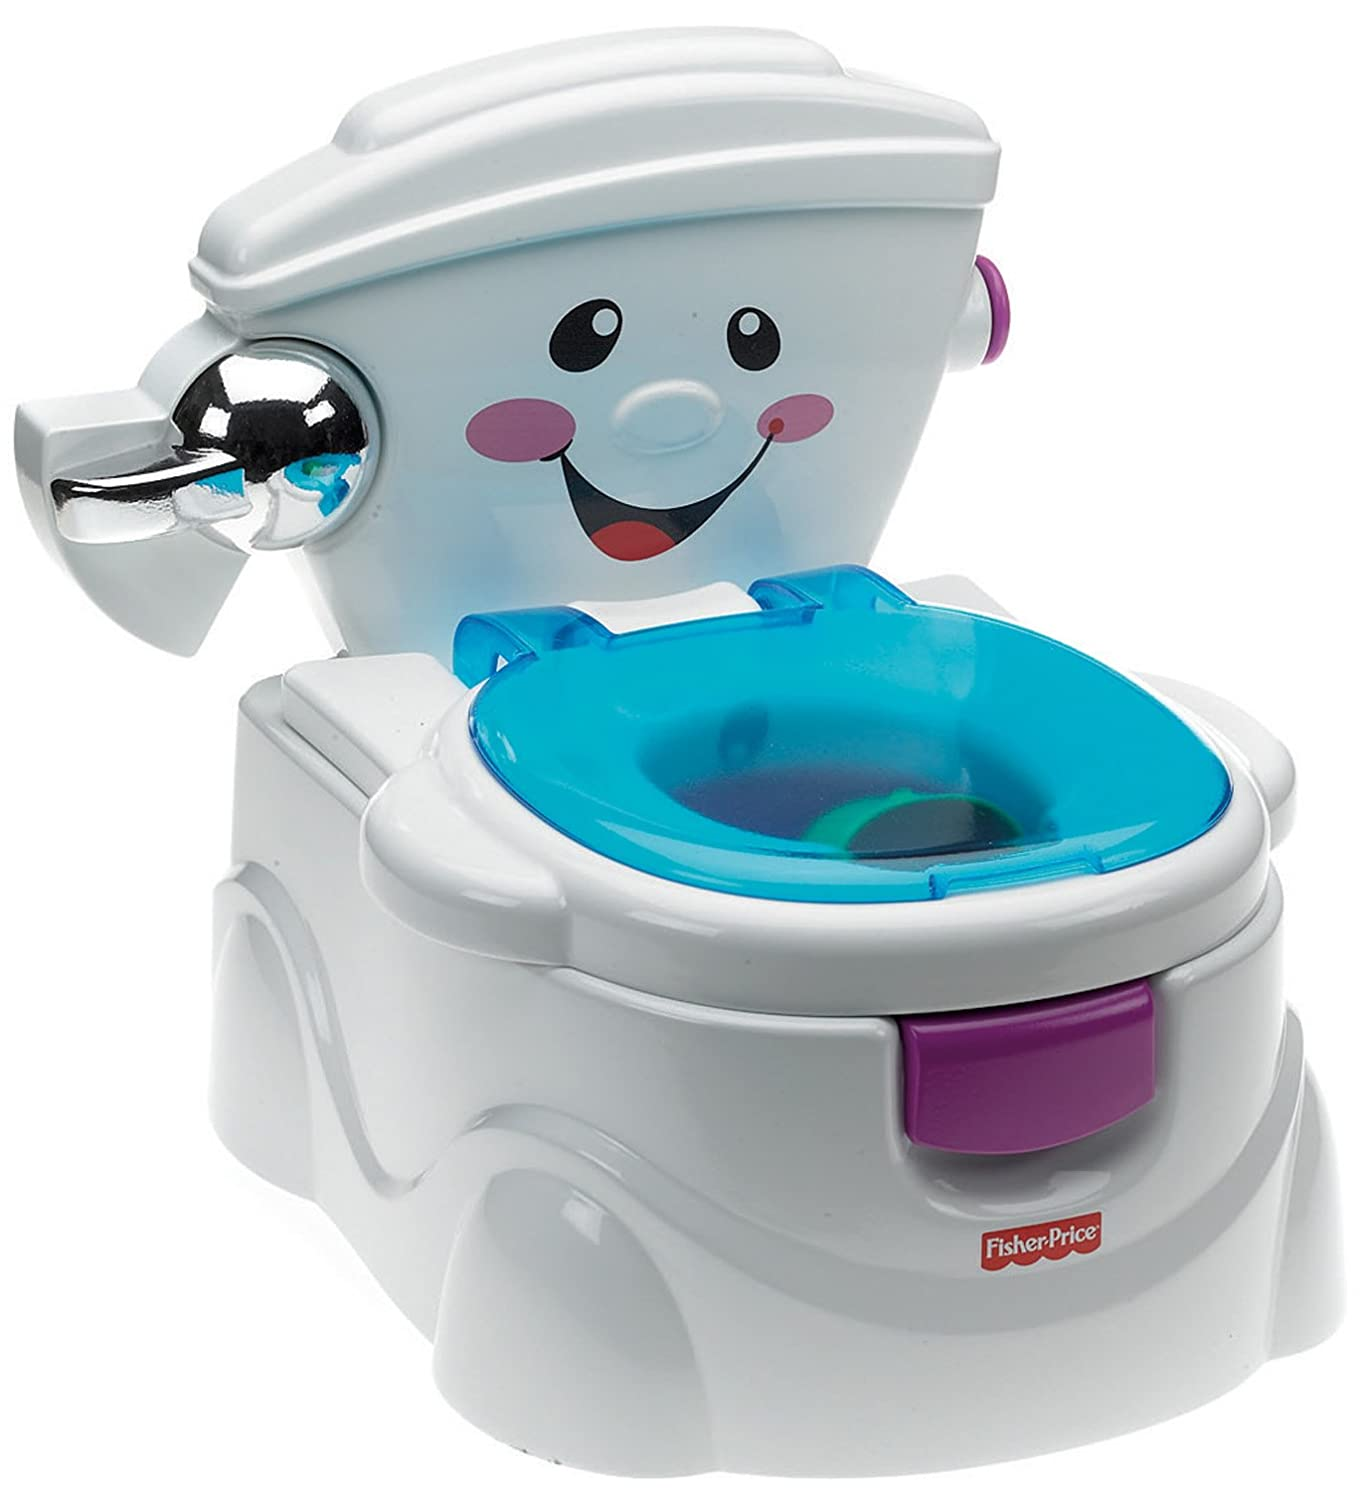 FISHER PRICE MY POTTY FRIEND MUSICAL TRAINING TOILET SEAT FAST FREE POST  eBay # Accessoires De Toilet Bobrick_002432